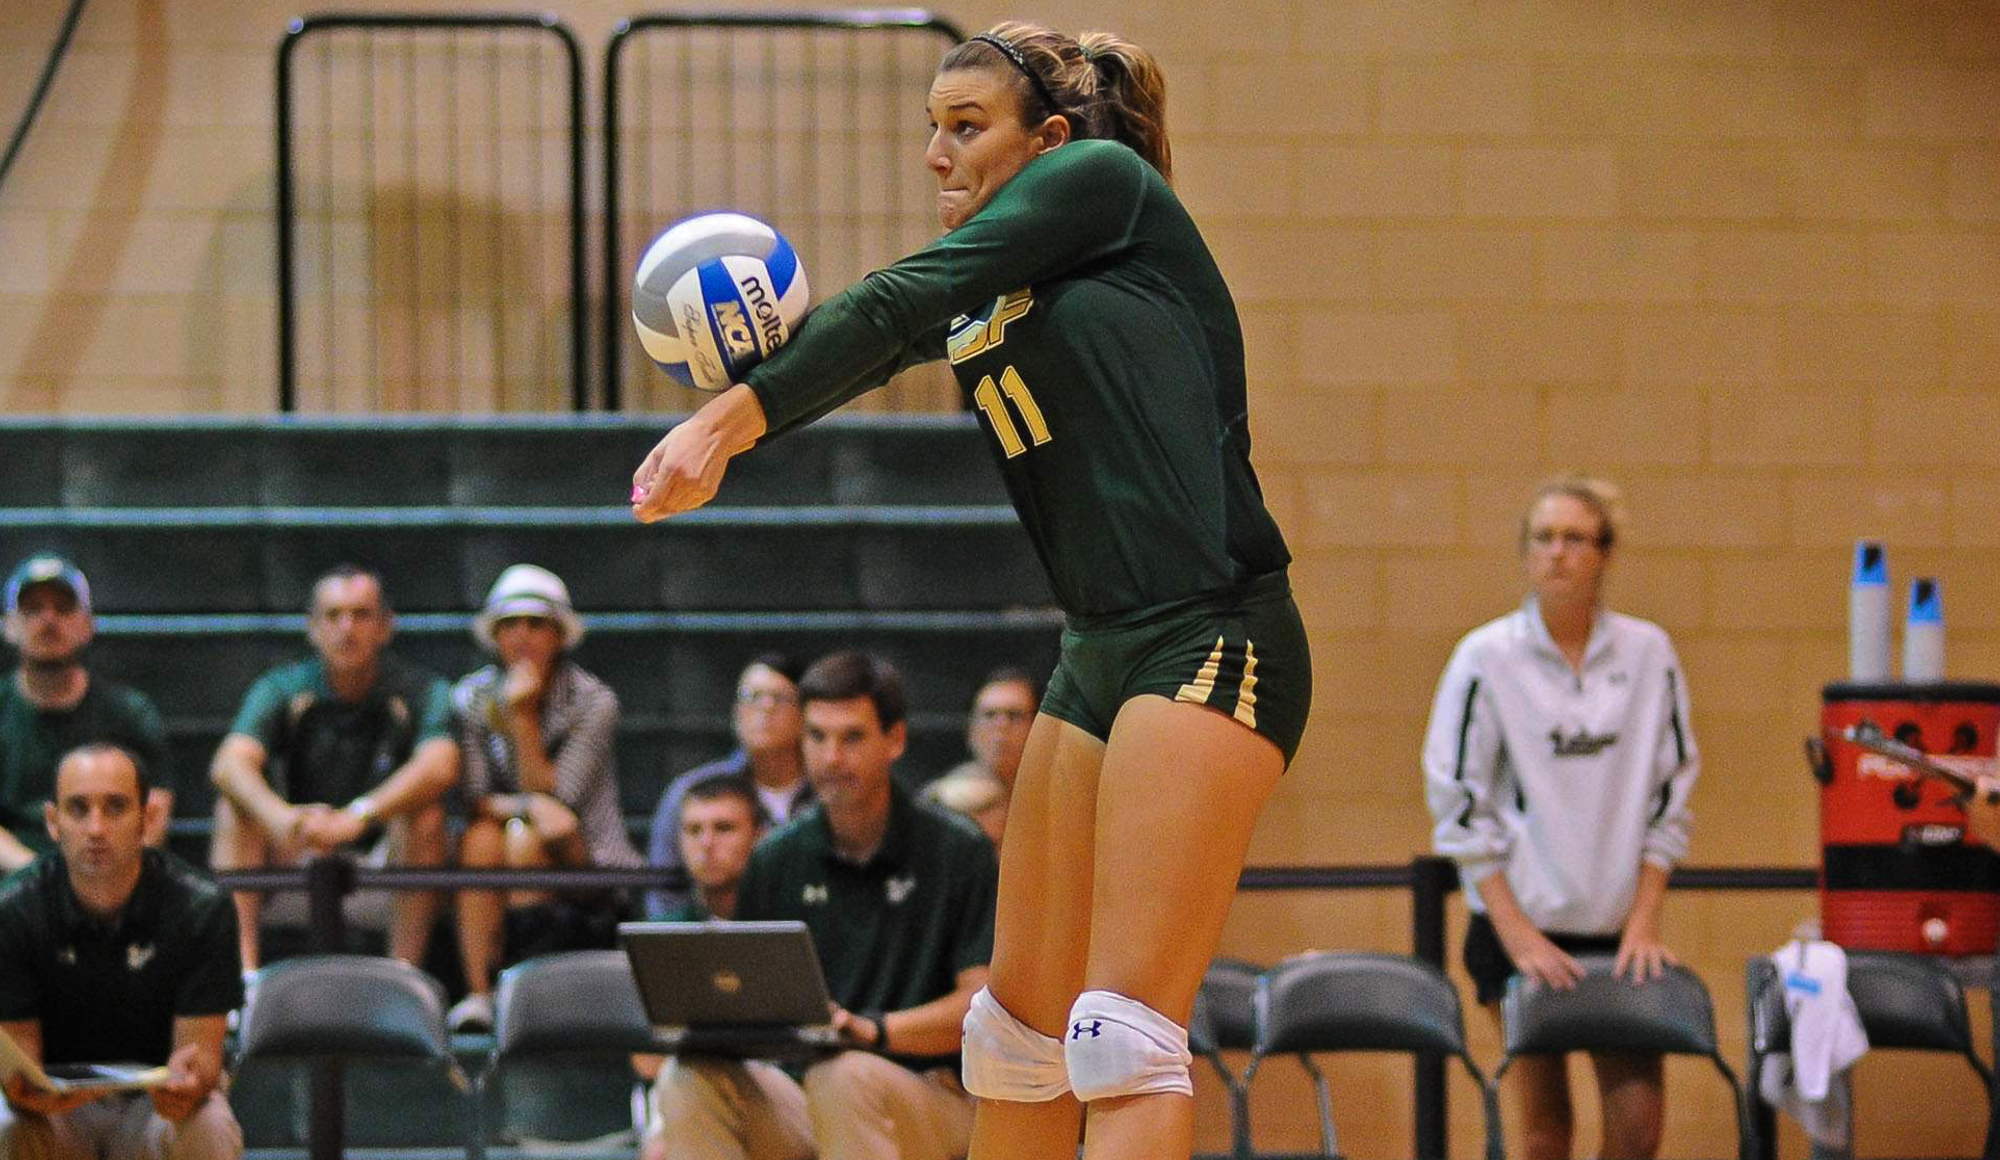 No. 11 Dakota Hampton USF Volleyball (2000x1160)